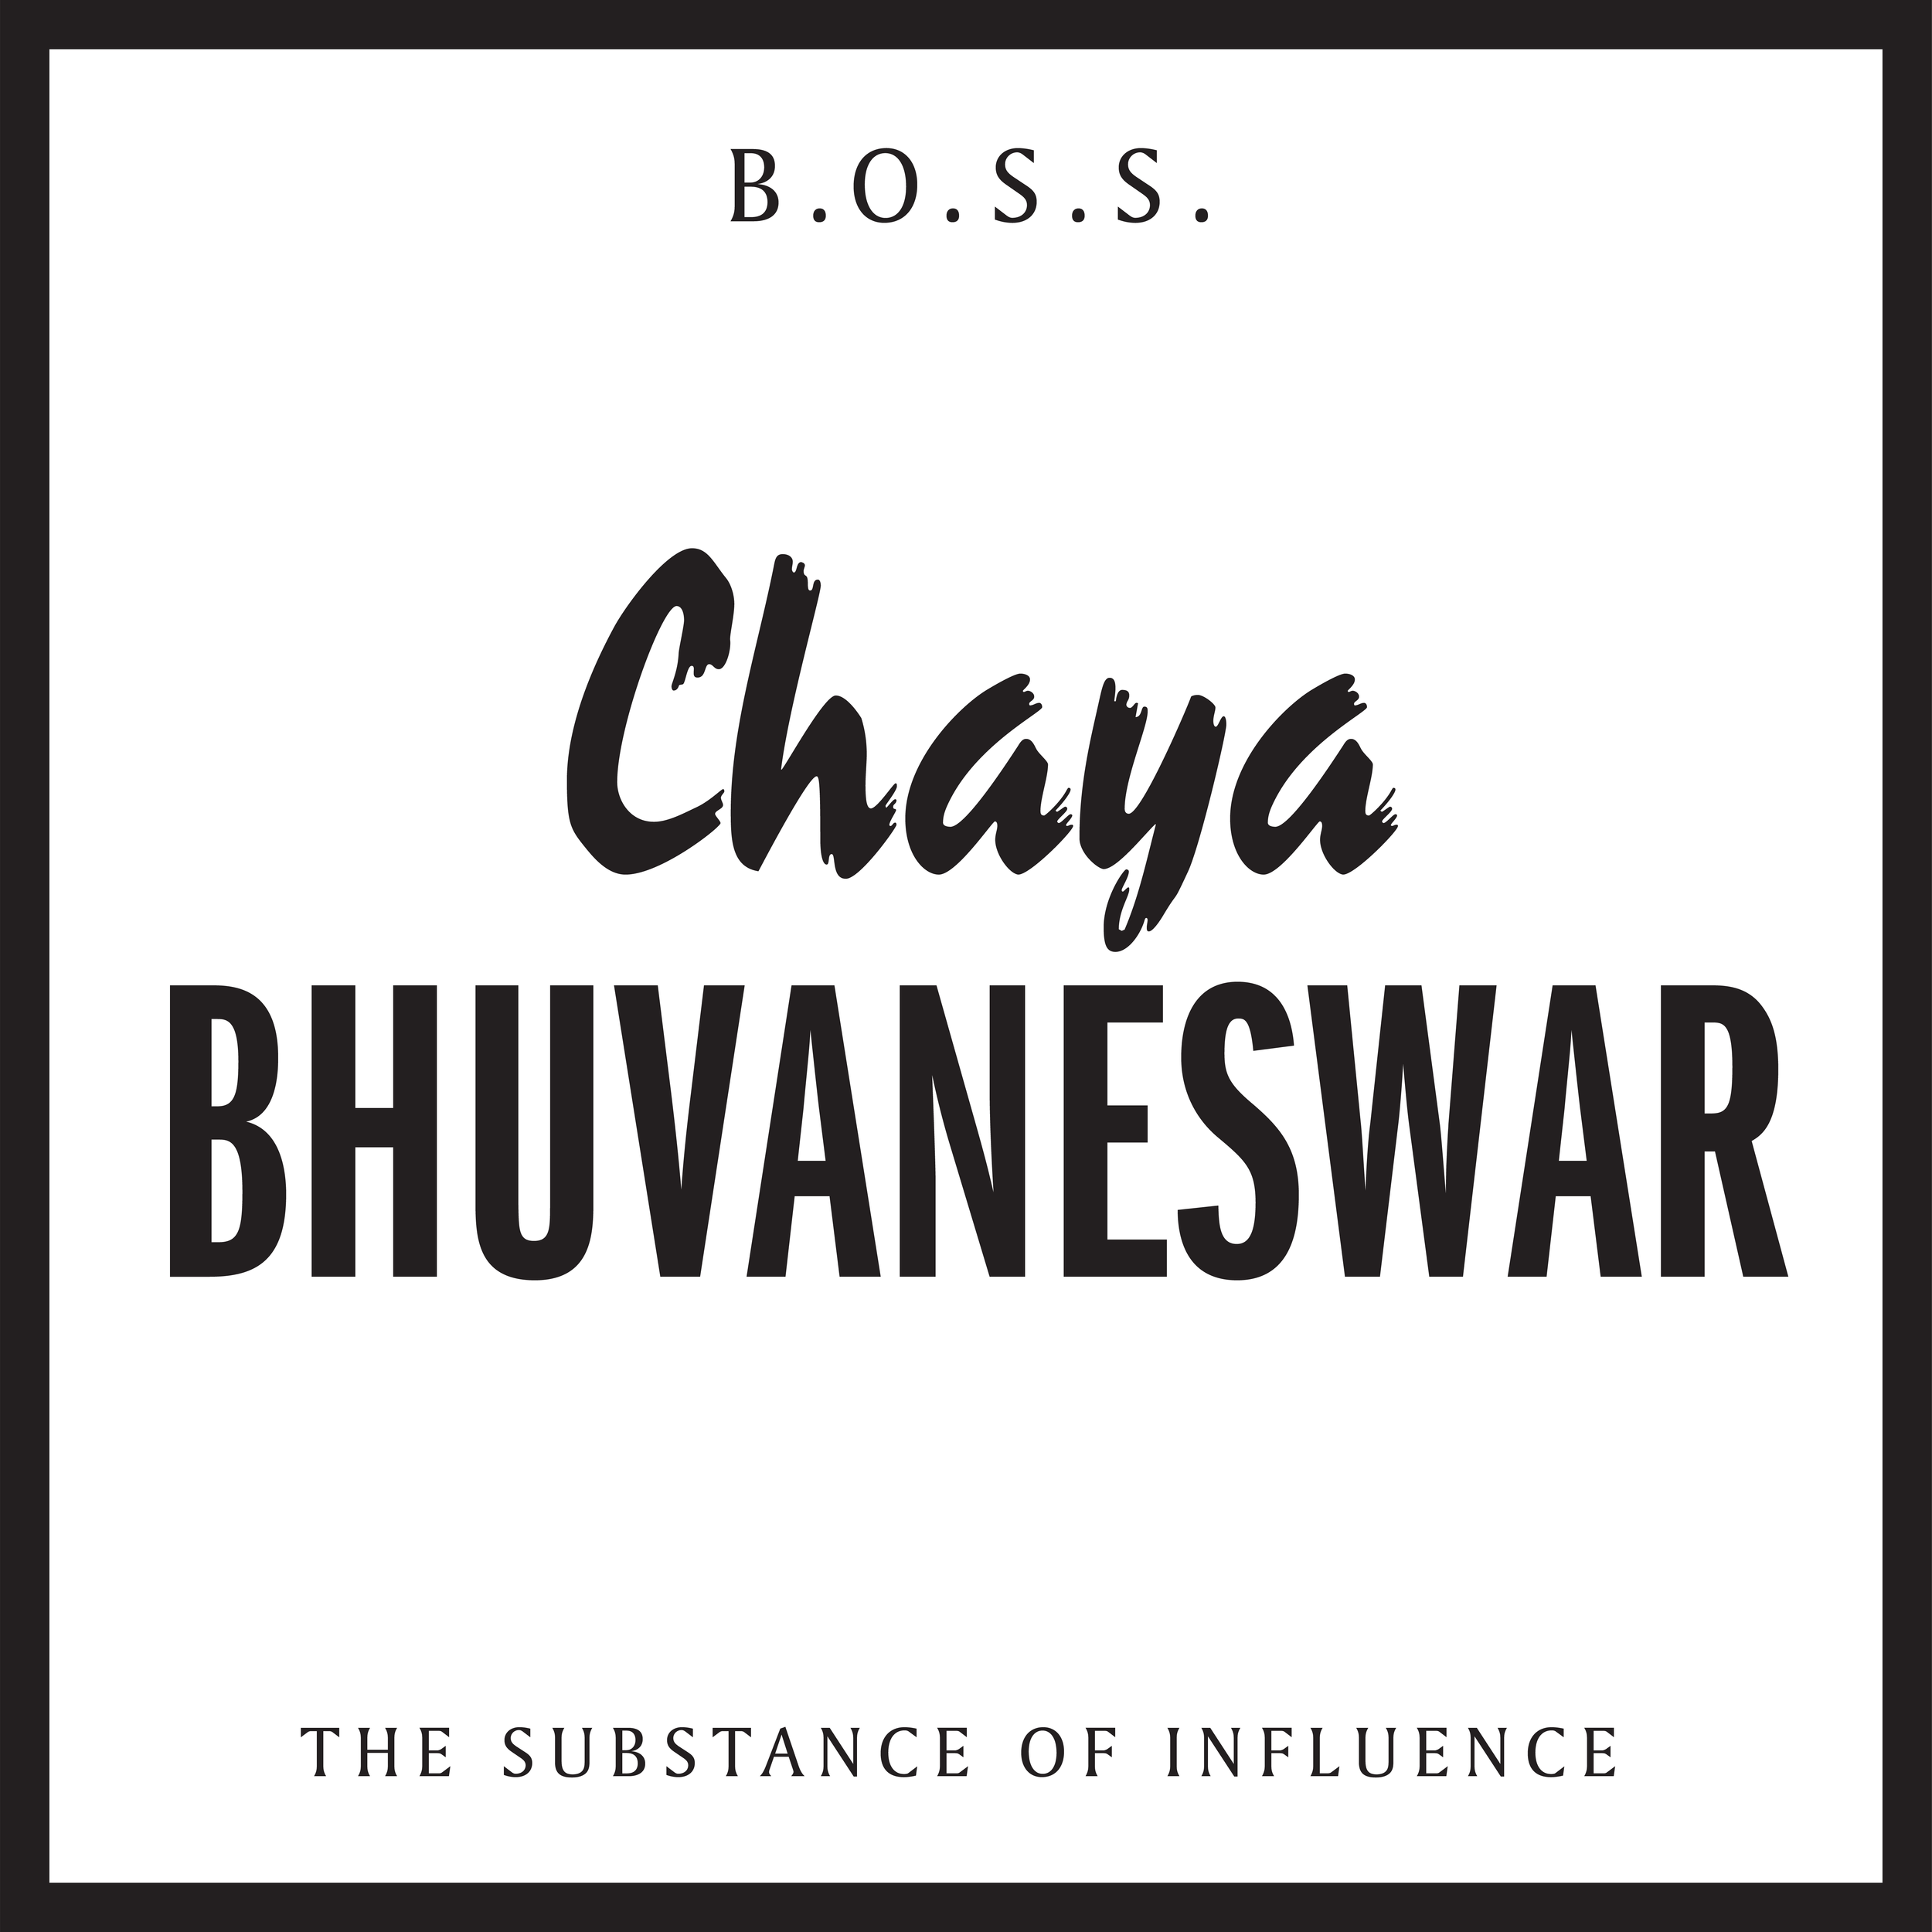 BOSS_TheSubstanceofInfluence_ChayaBhuvaneswar_Border_Option2.png